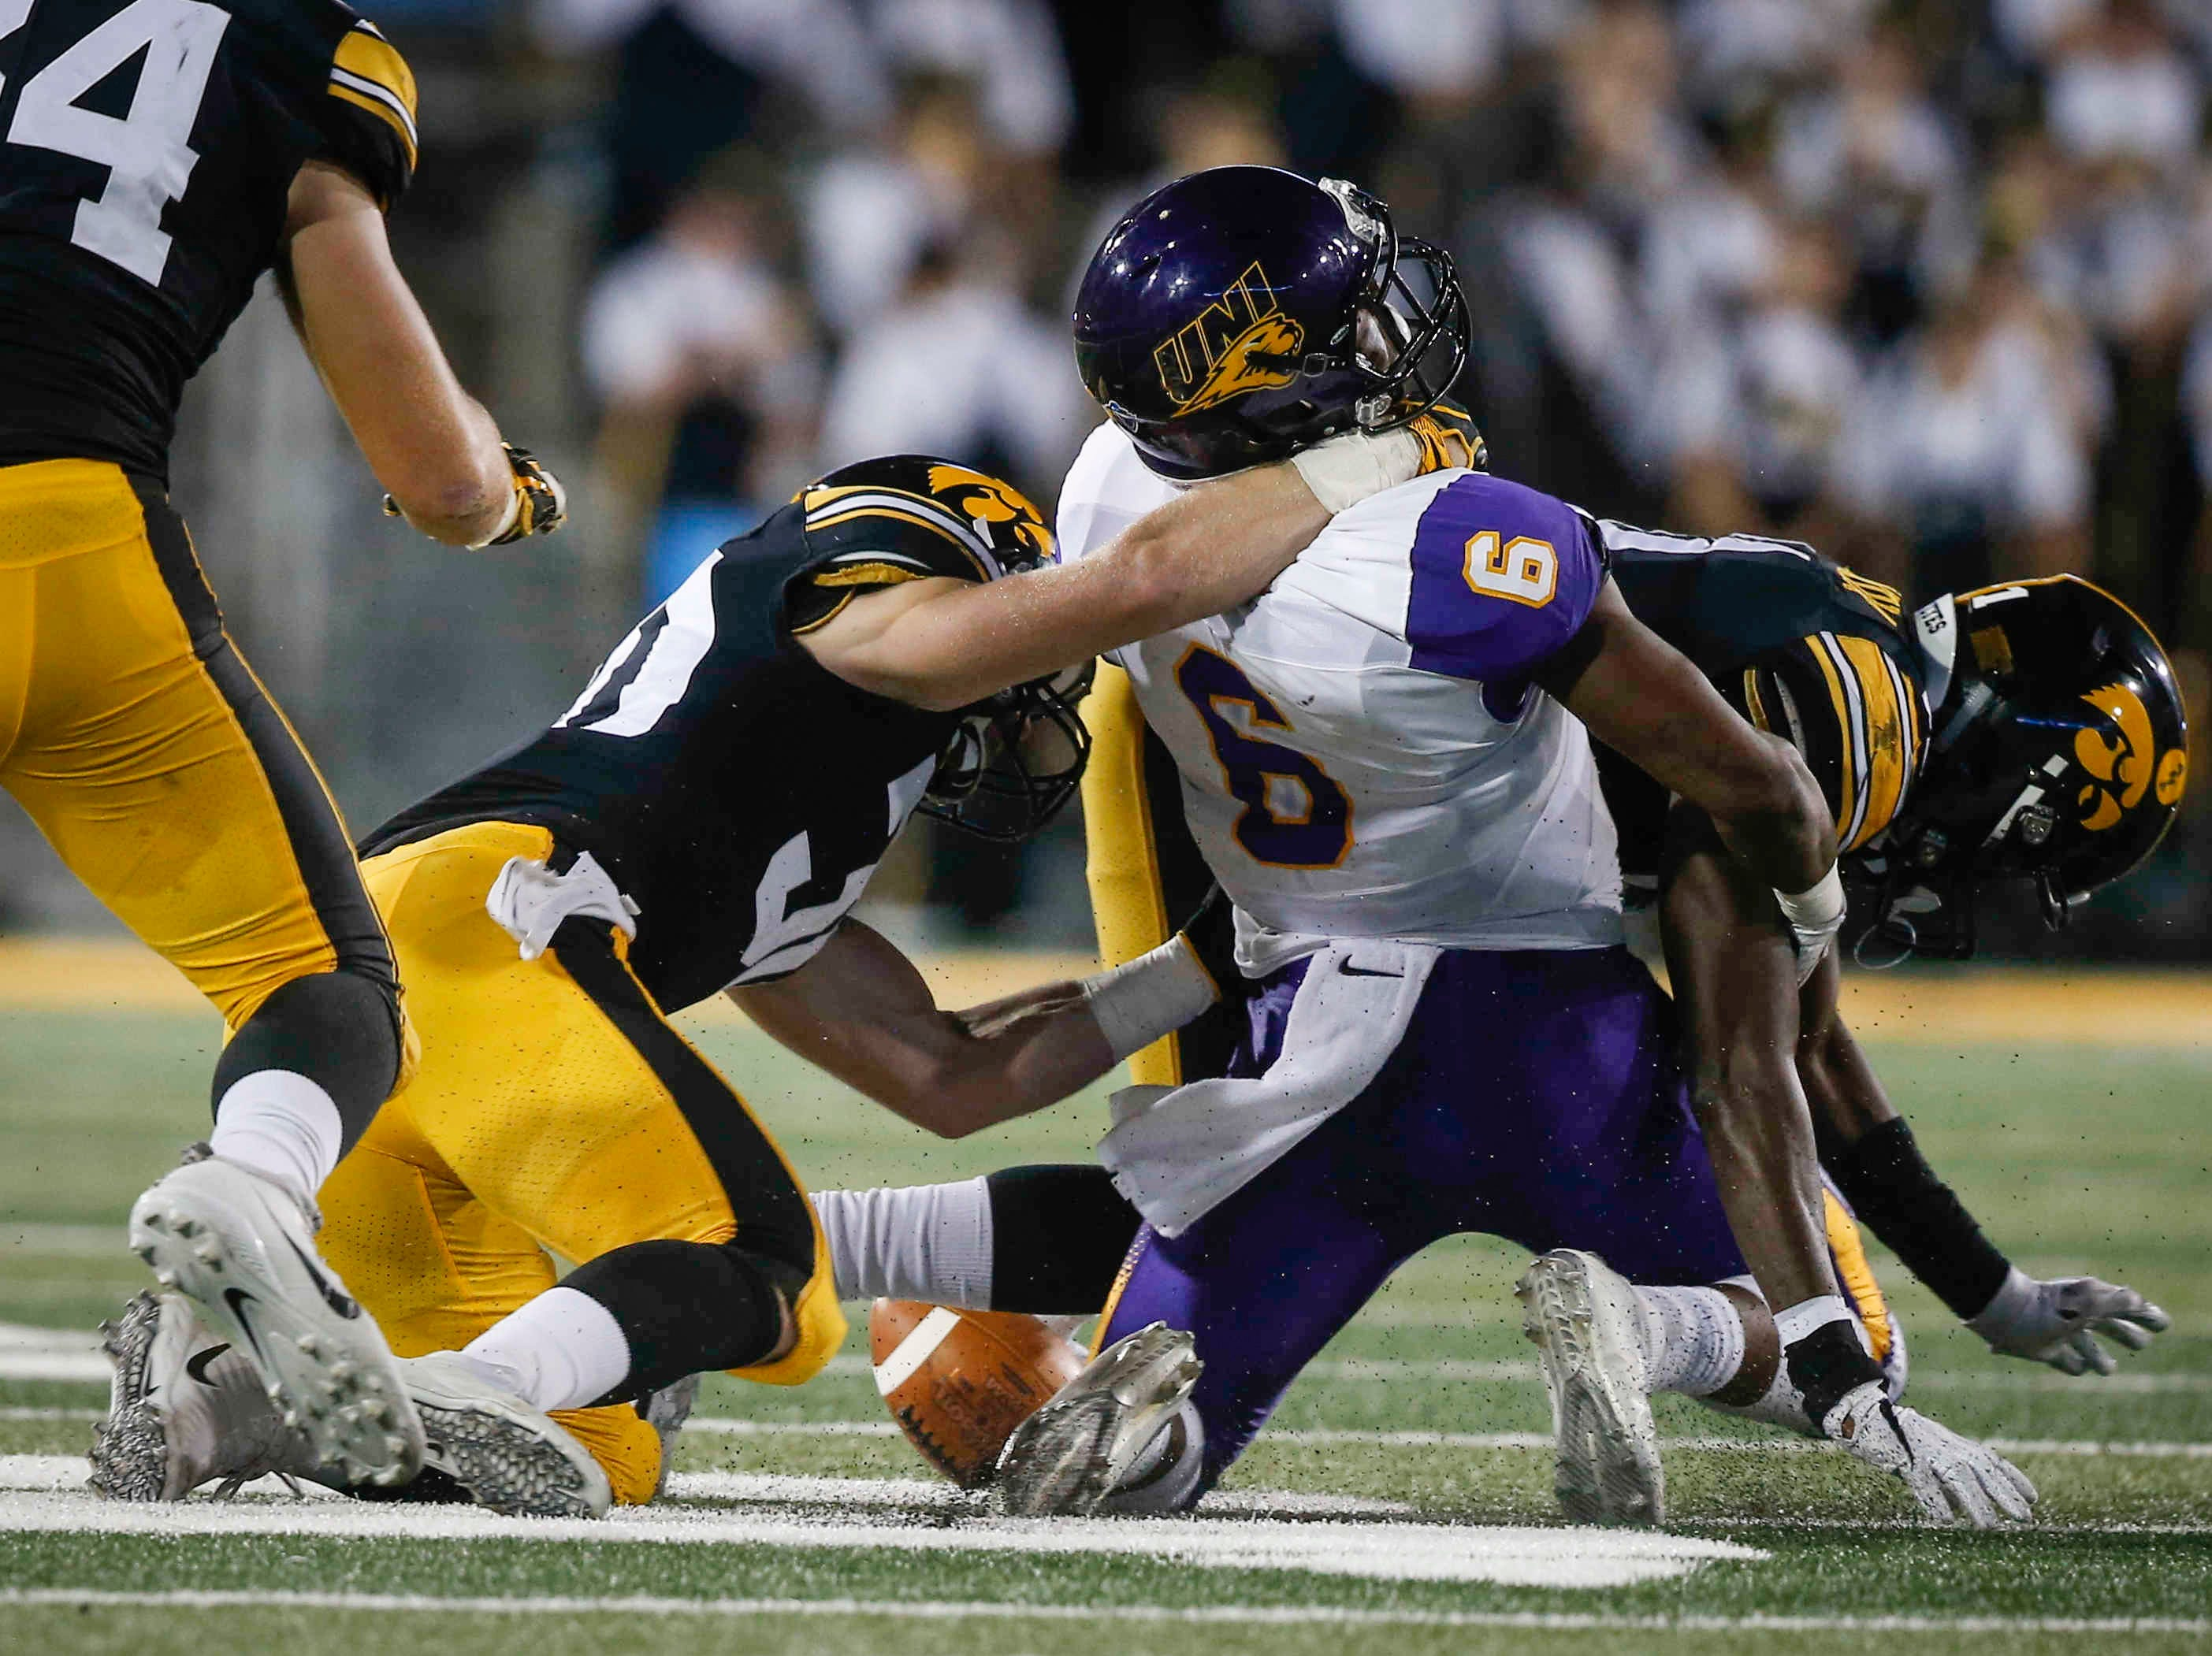 Iowa safety Jake Gervase hits Northern Iowa receiver Terrell Carey hard enough to force a fumble on Saturday, Sept. 15, 2018, at Kinnick Stadium in Iowa City.